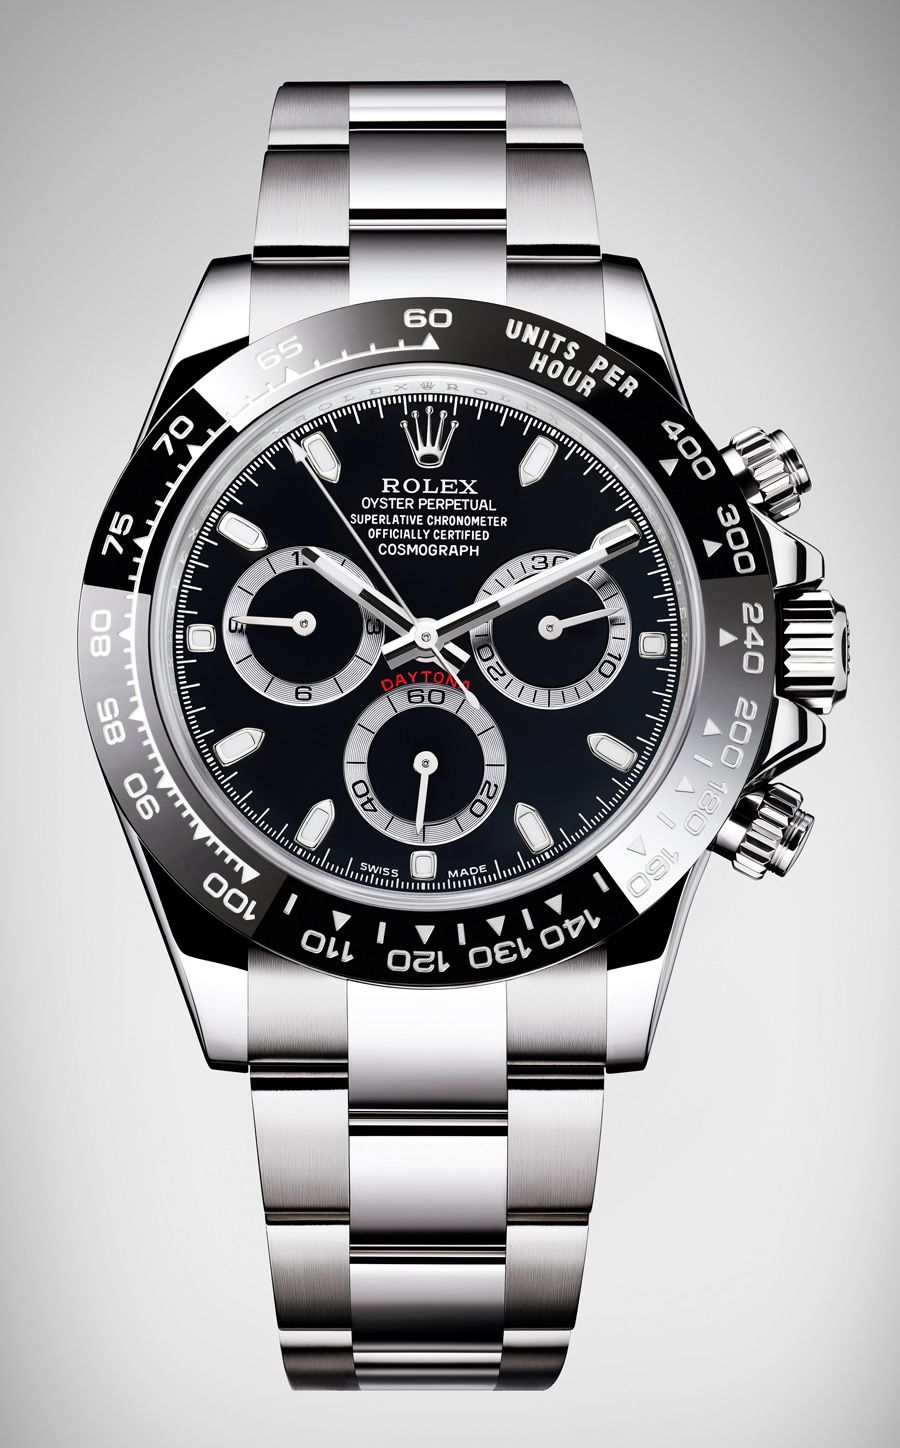 rolex oyster perpetual cosmograph daytona in schwarz. Black Bedroom Furniture Sets. Home Design Ideas